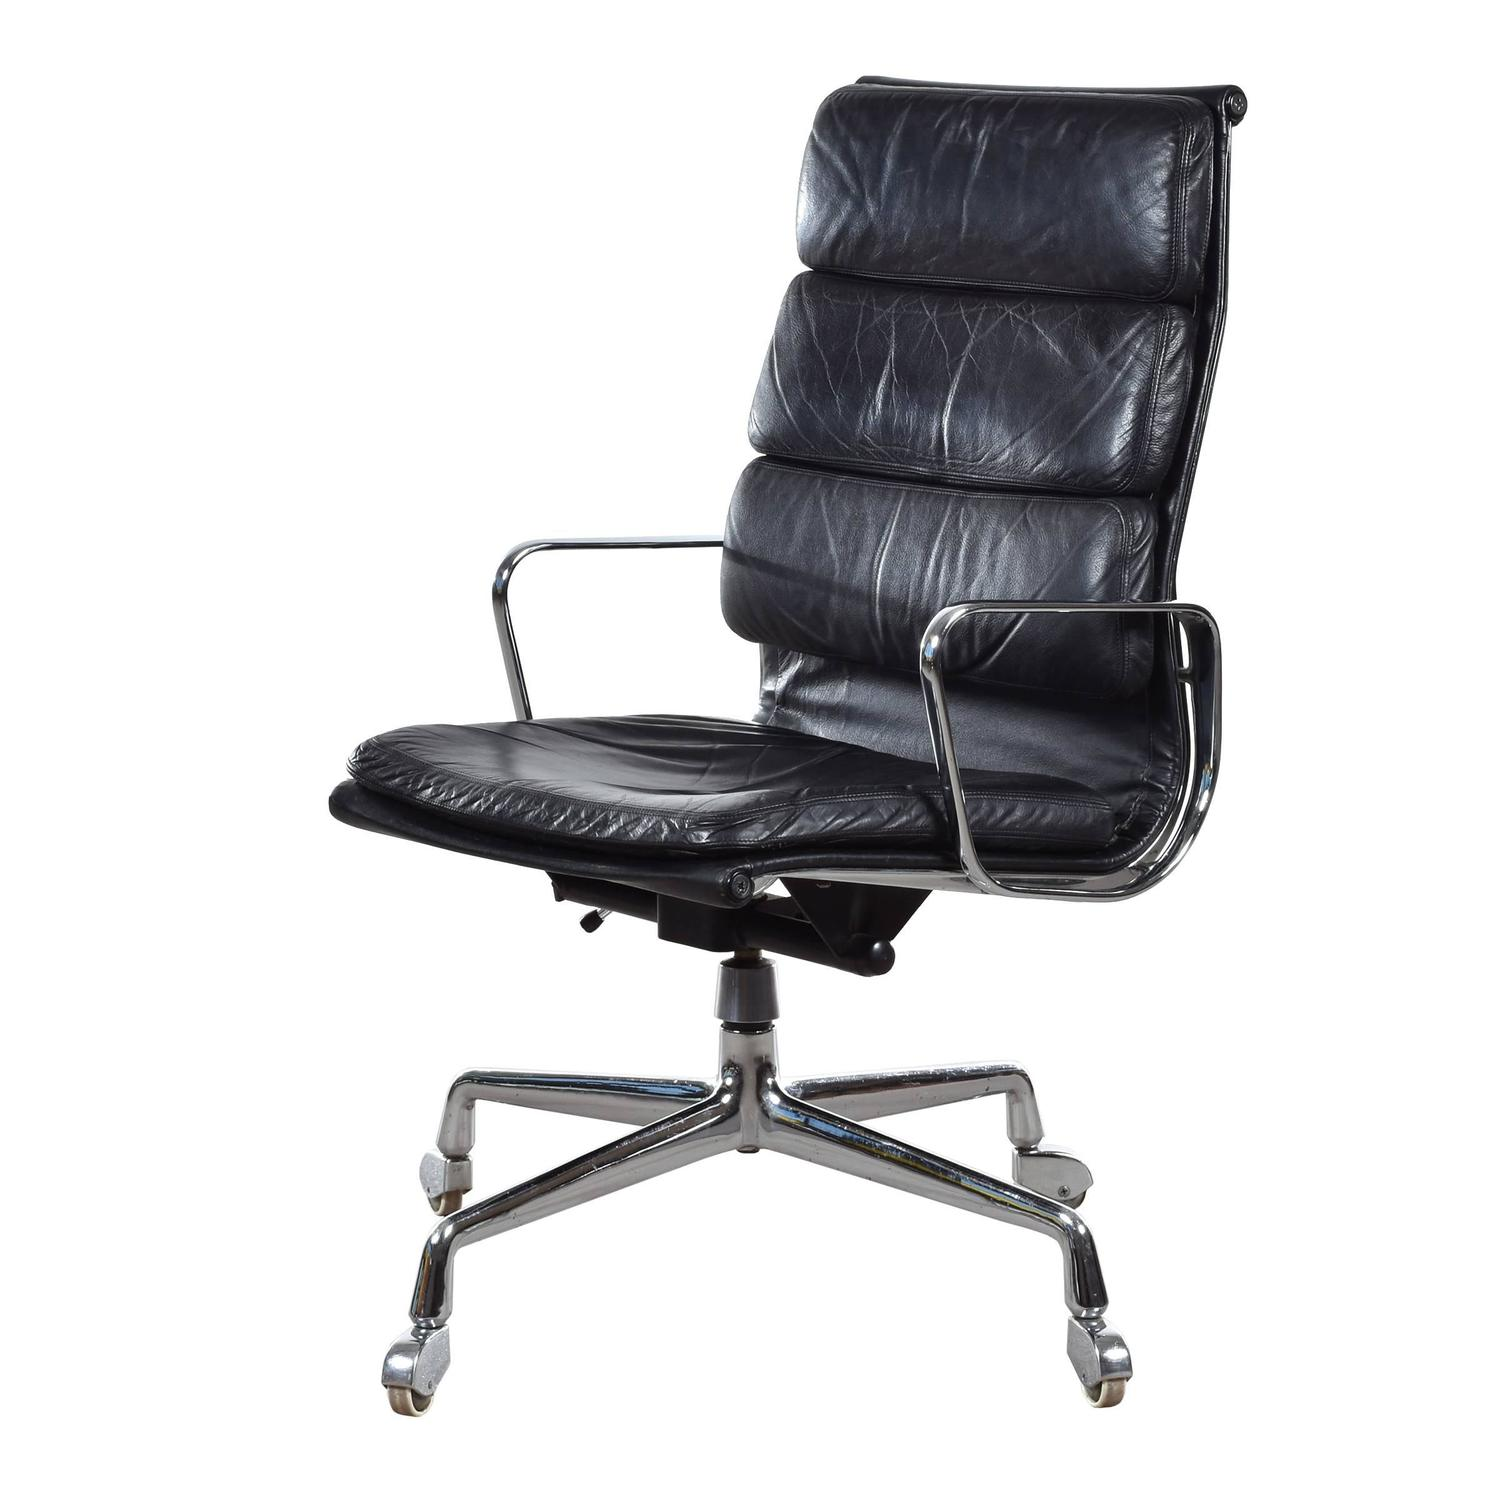 Eames EA219 Executive fice Chair for Vitra Fehlbaum at 1stdibs